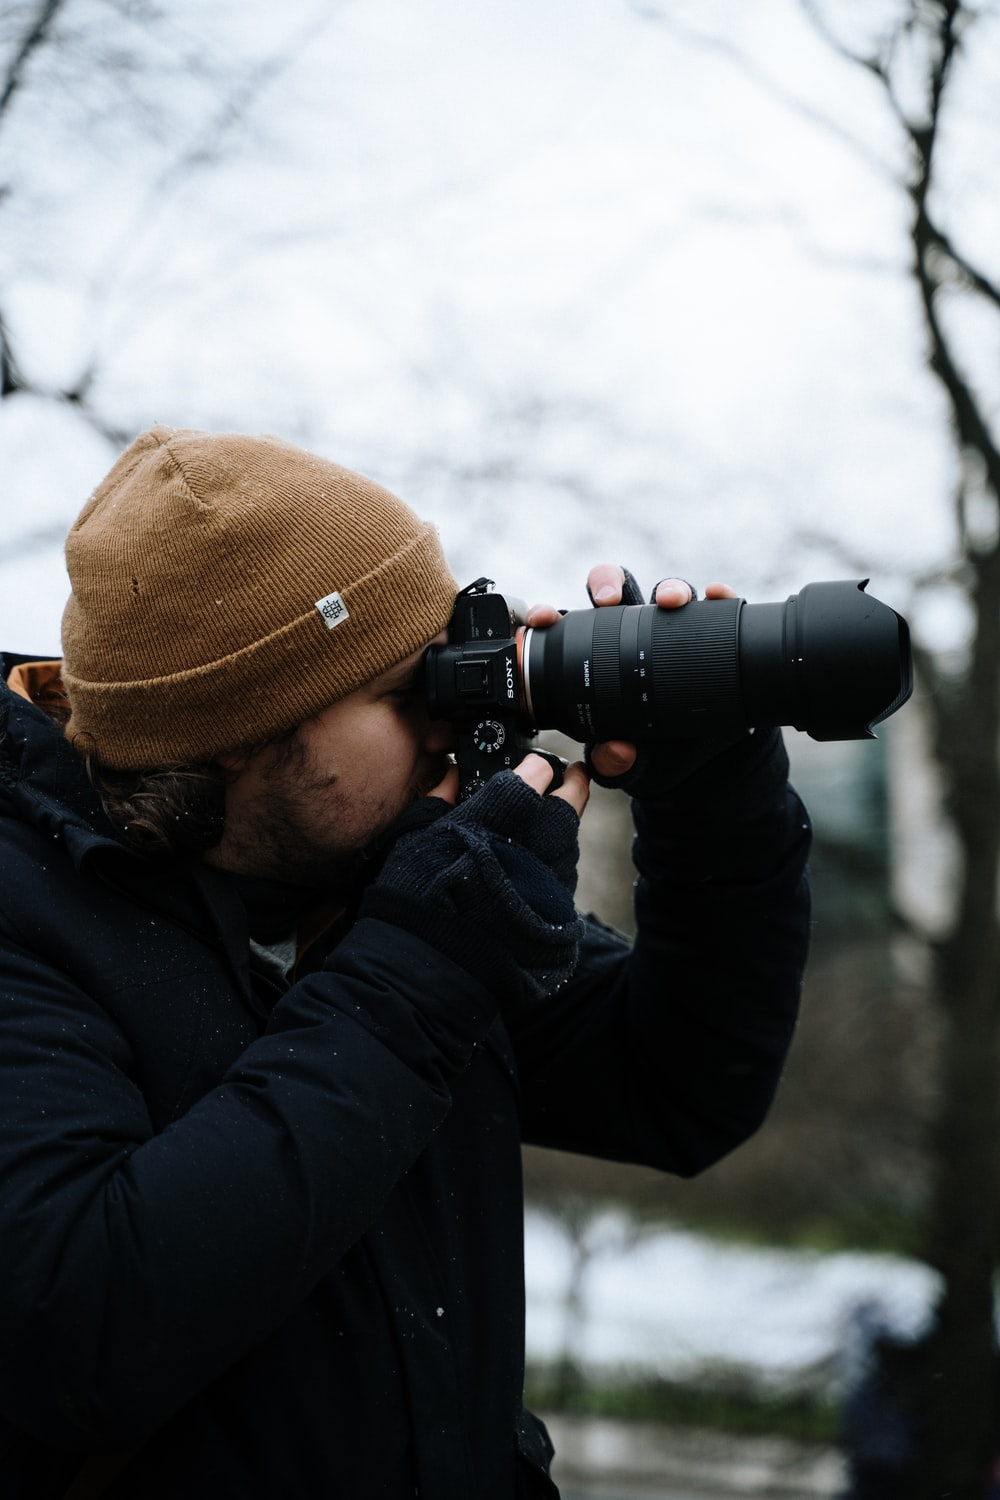 man in black jacket and brown knit cap using black dslr camera